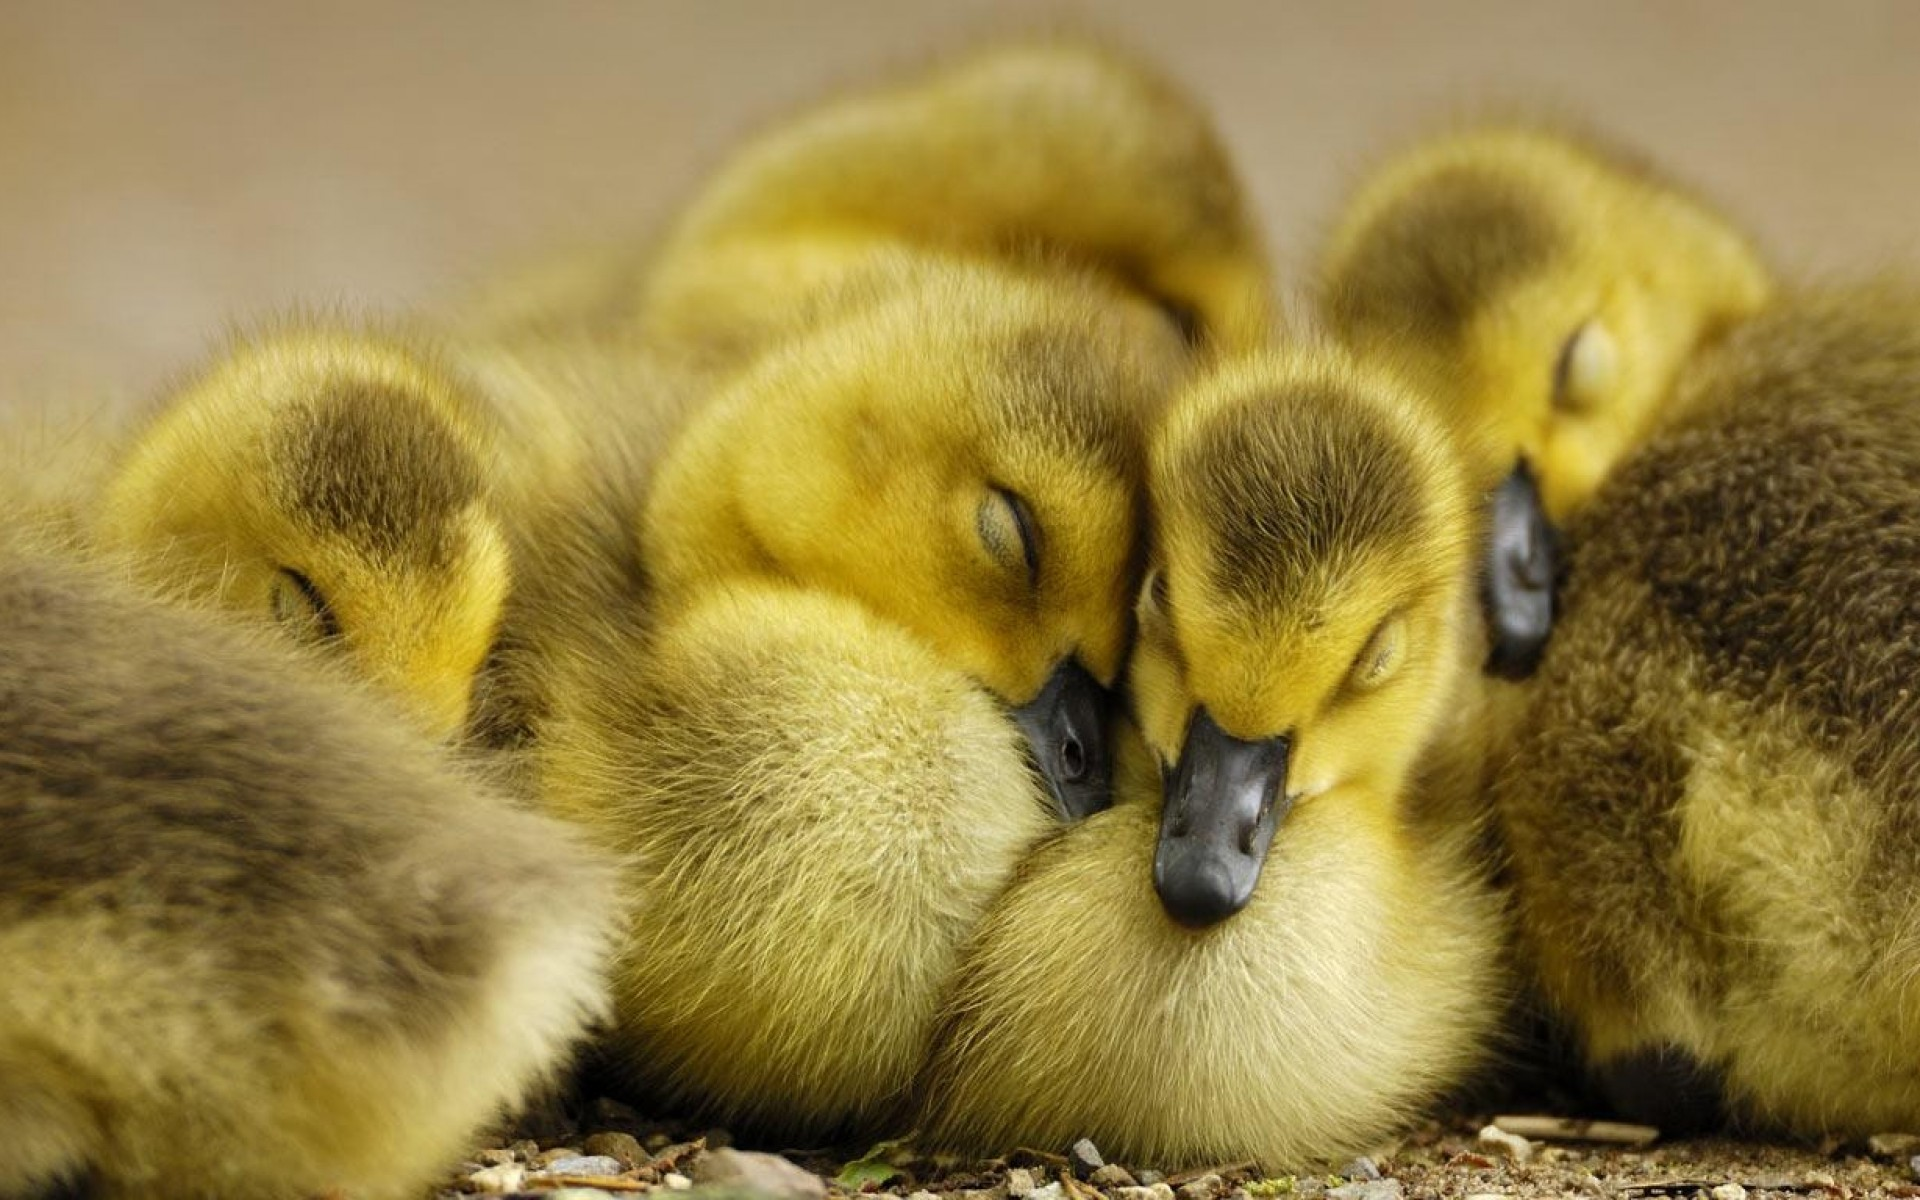 Cute Duckling Wallpaper